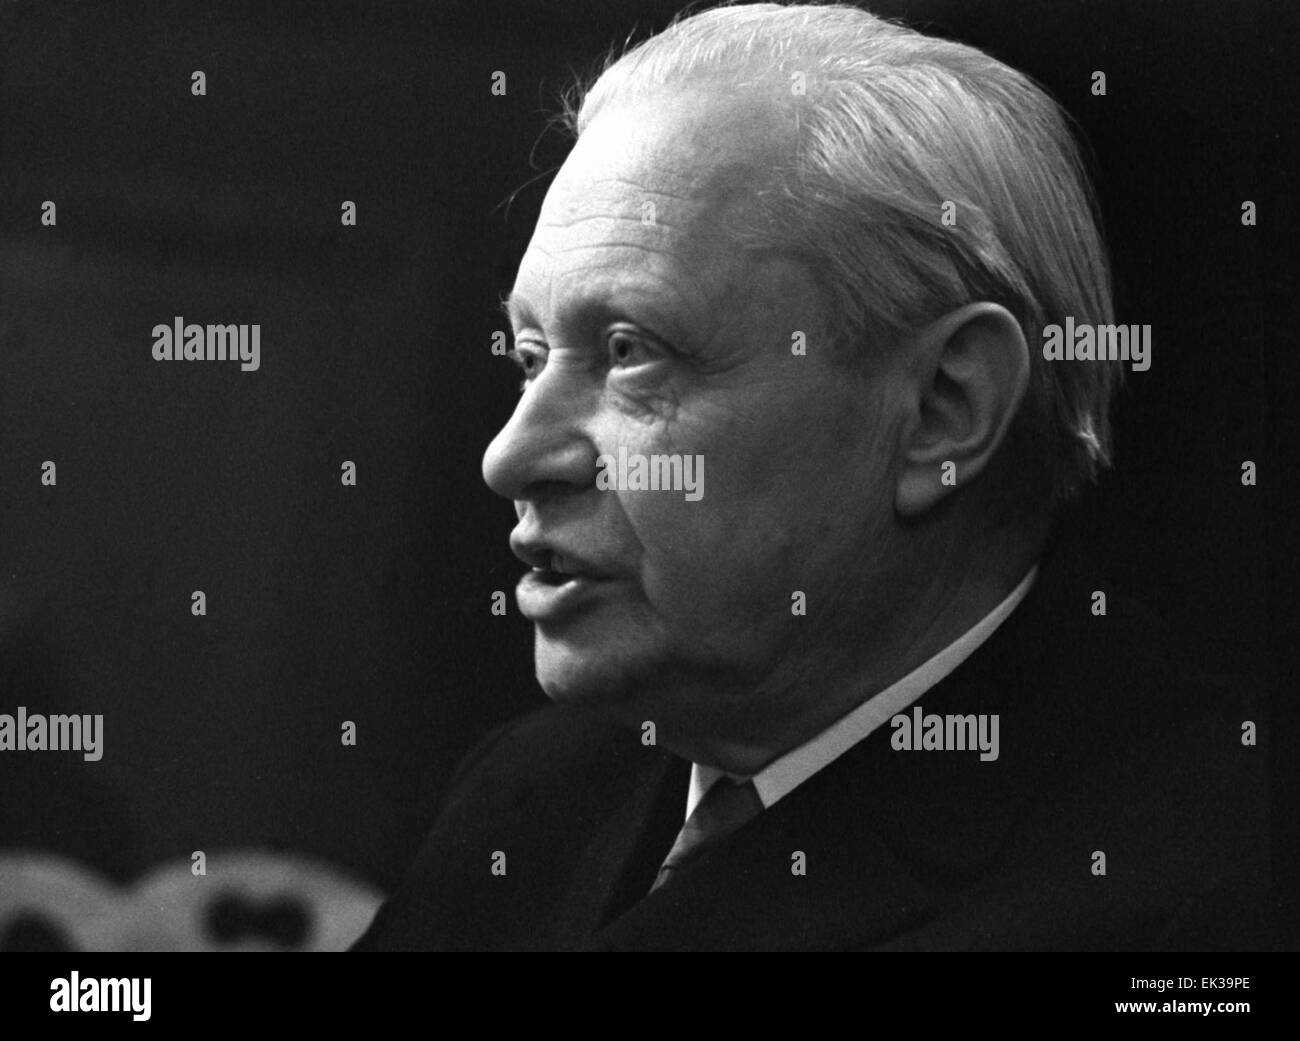 Moscow. Peoples' Artist of the Soviet Union Sergei Obraztsov. - Stock Image